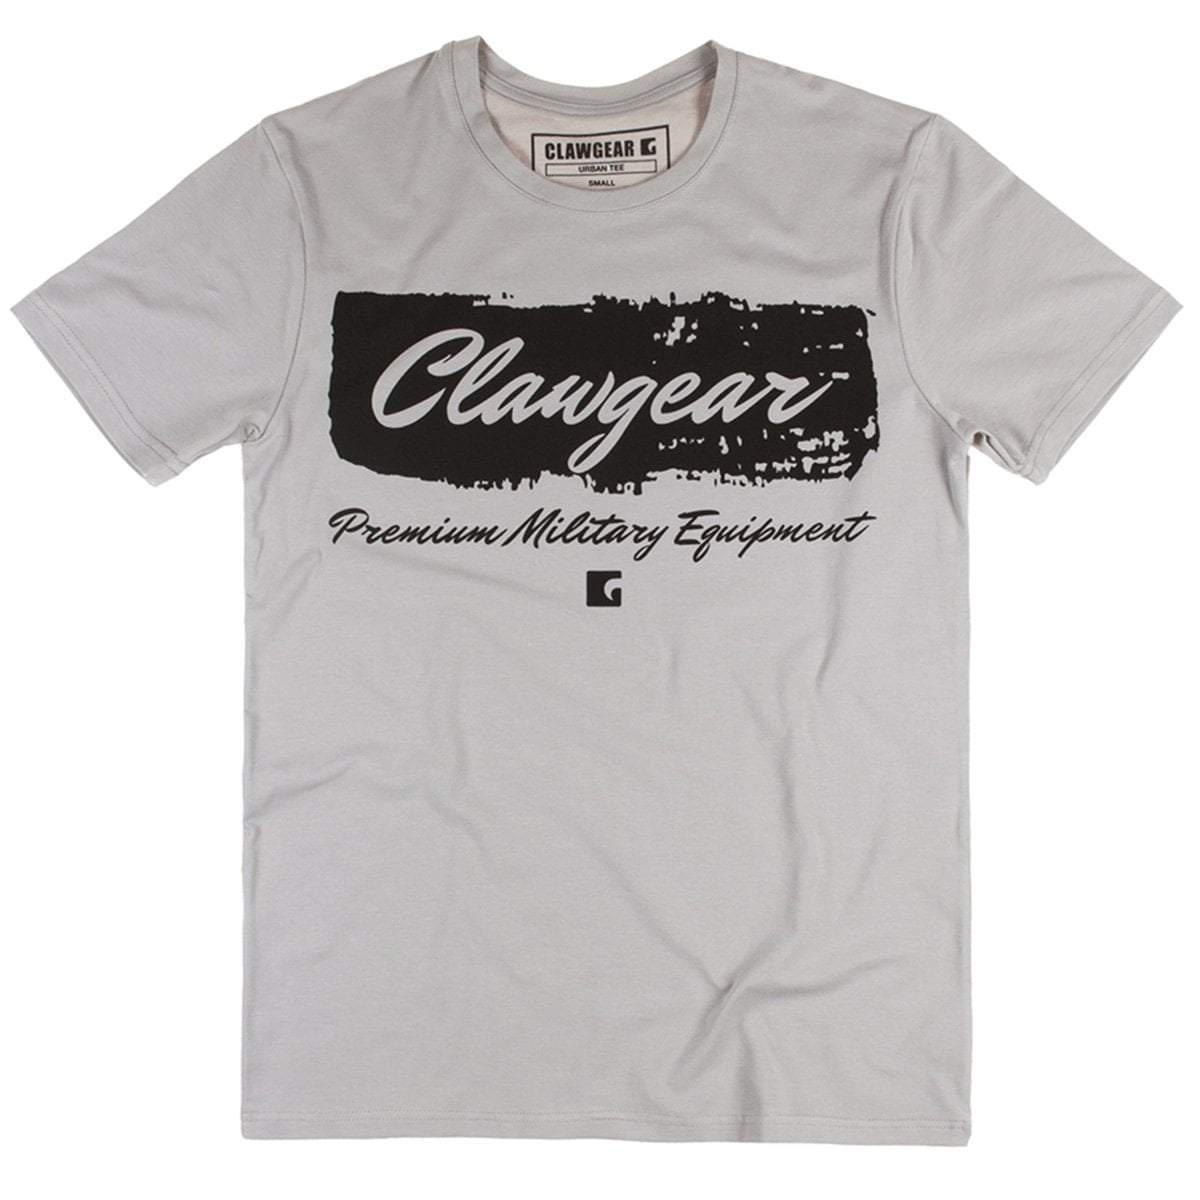 Clawgear Handwritten Tee Light Grey | UKMCPro